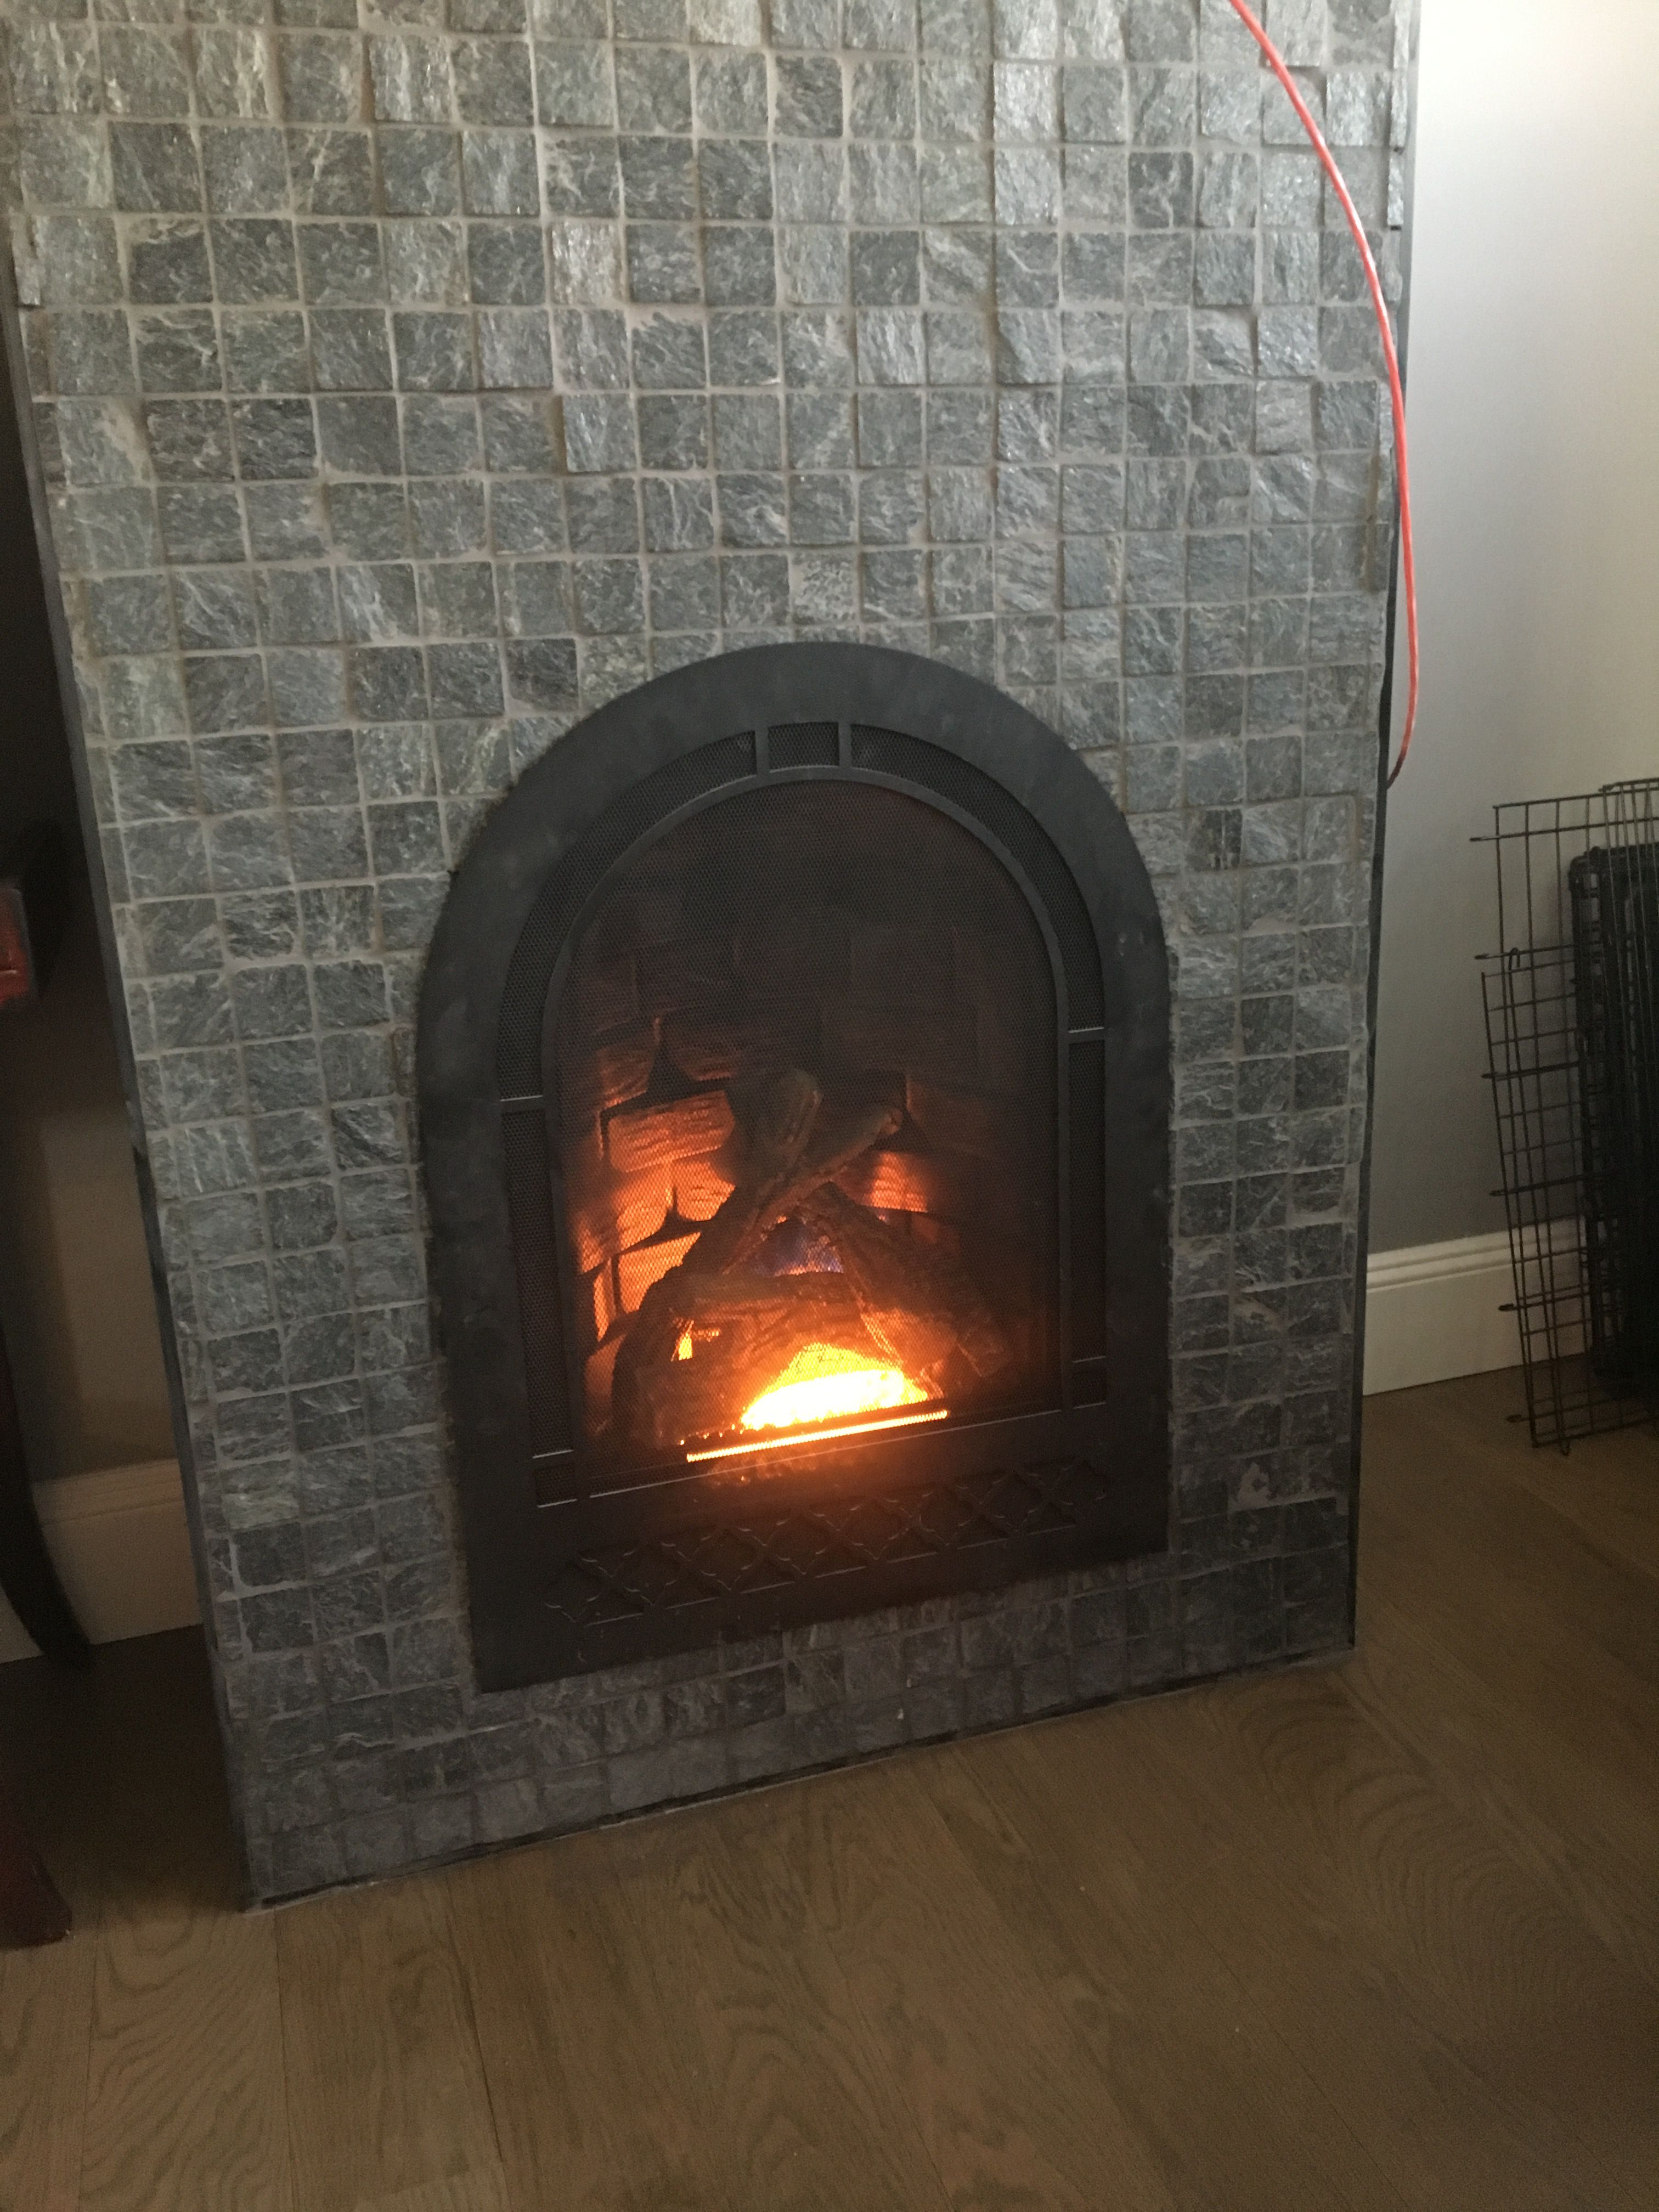 from the fireplace store seaford tiles from wayfair my den rh in pinterest com Fireplace Stores in NJ Center Fireplace House Plans